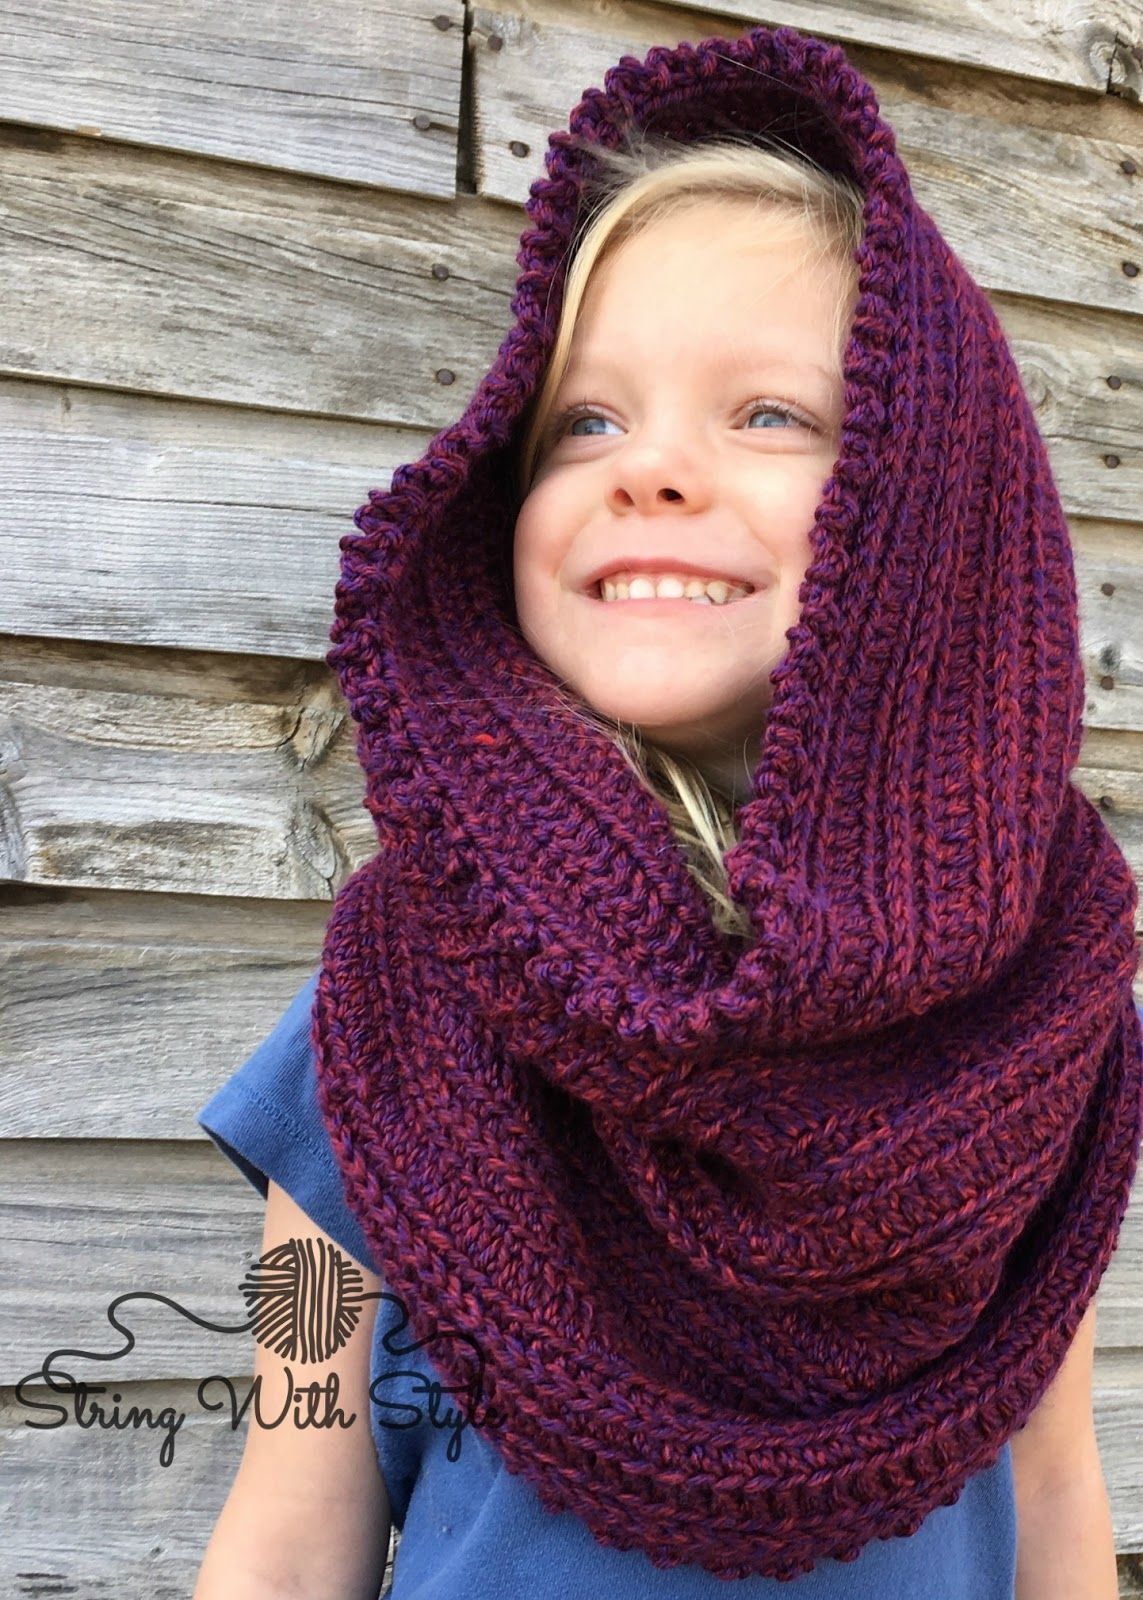 Sleigh ride hooded scarf free crochet pattern from string with sleigh ride hooded scarf free crochet pattern from string with style dt1010fo